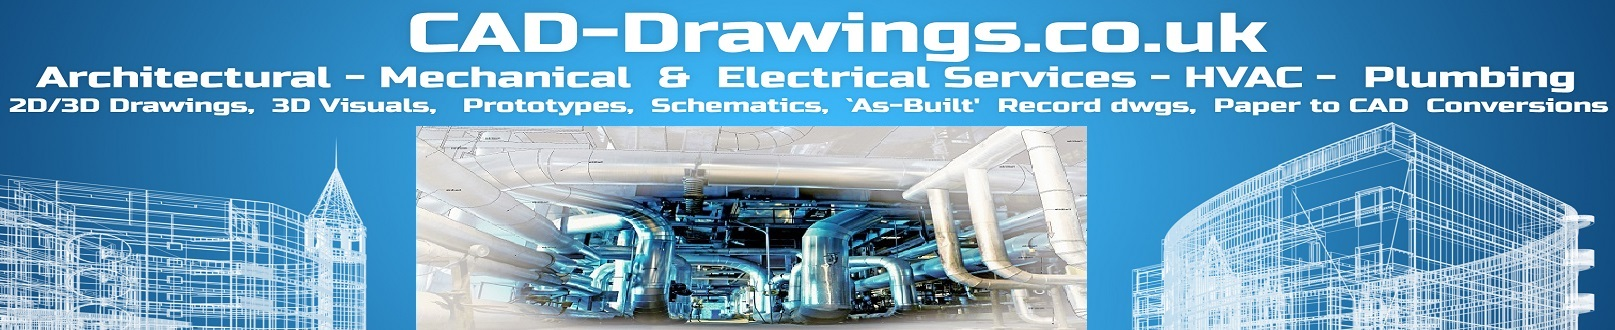 cad-drawings.co.uk - Header Pic. 4